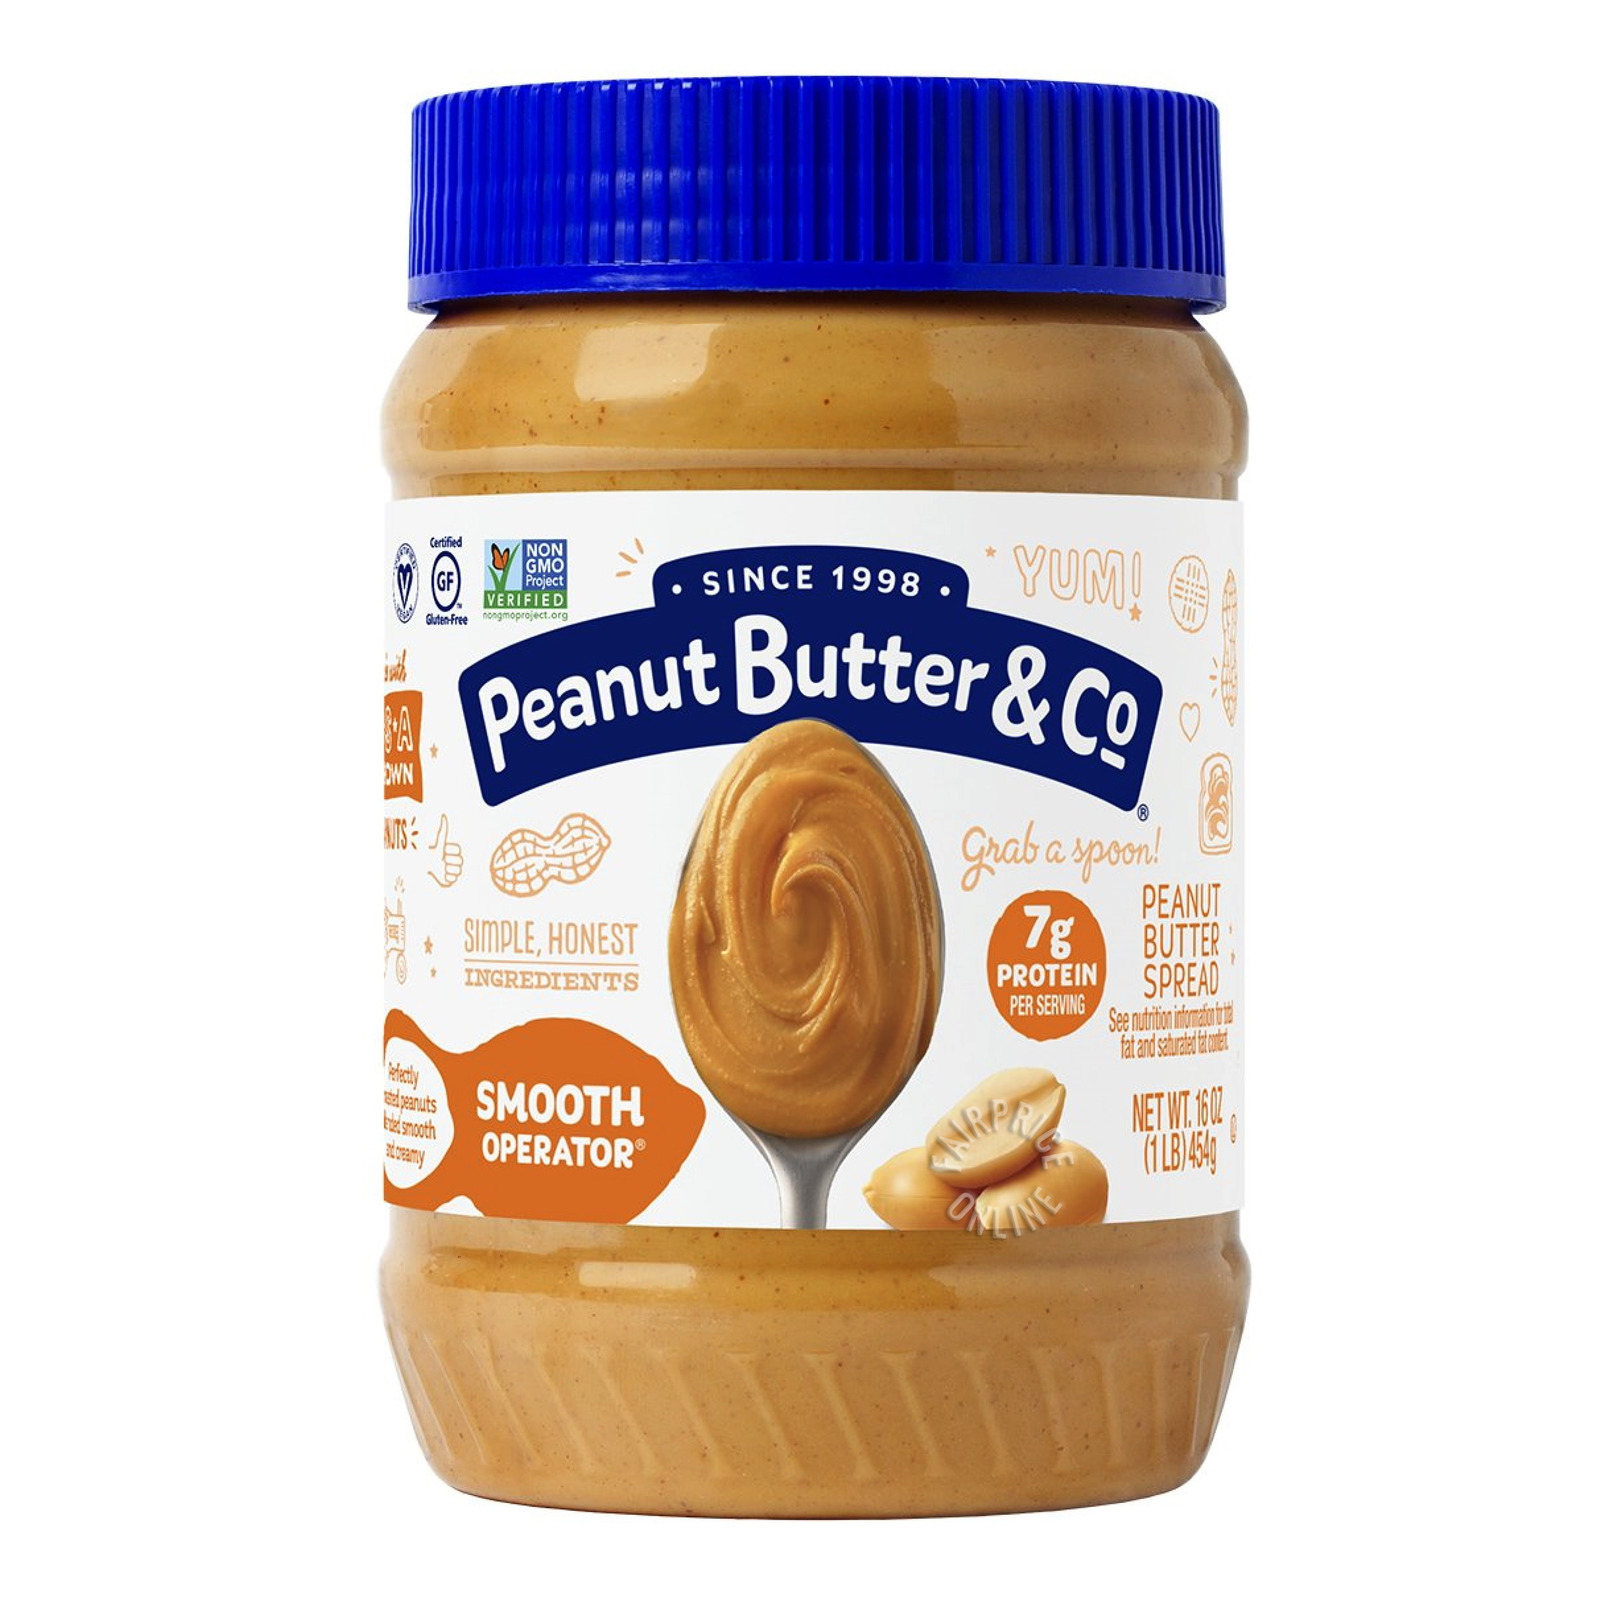 Peanut Butter & Co Peanut Butter Spread - Smooth Operator